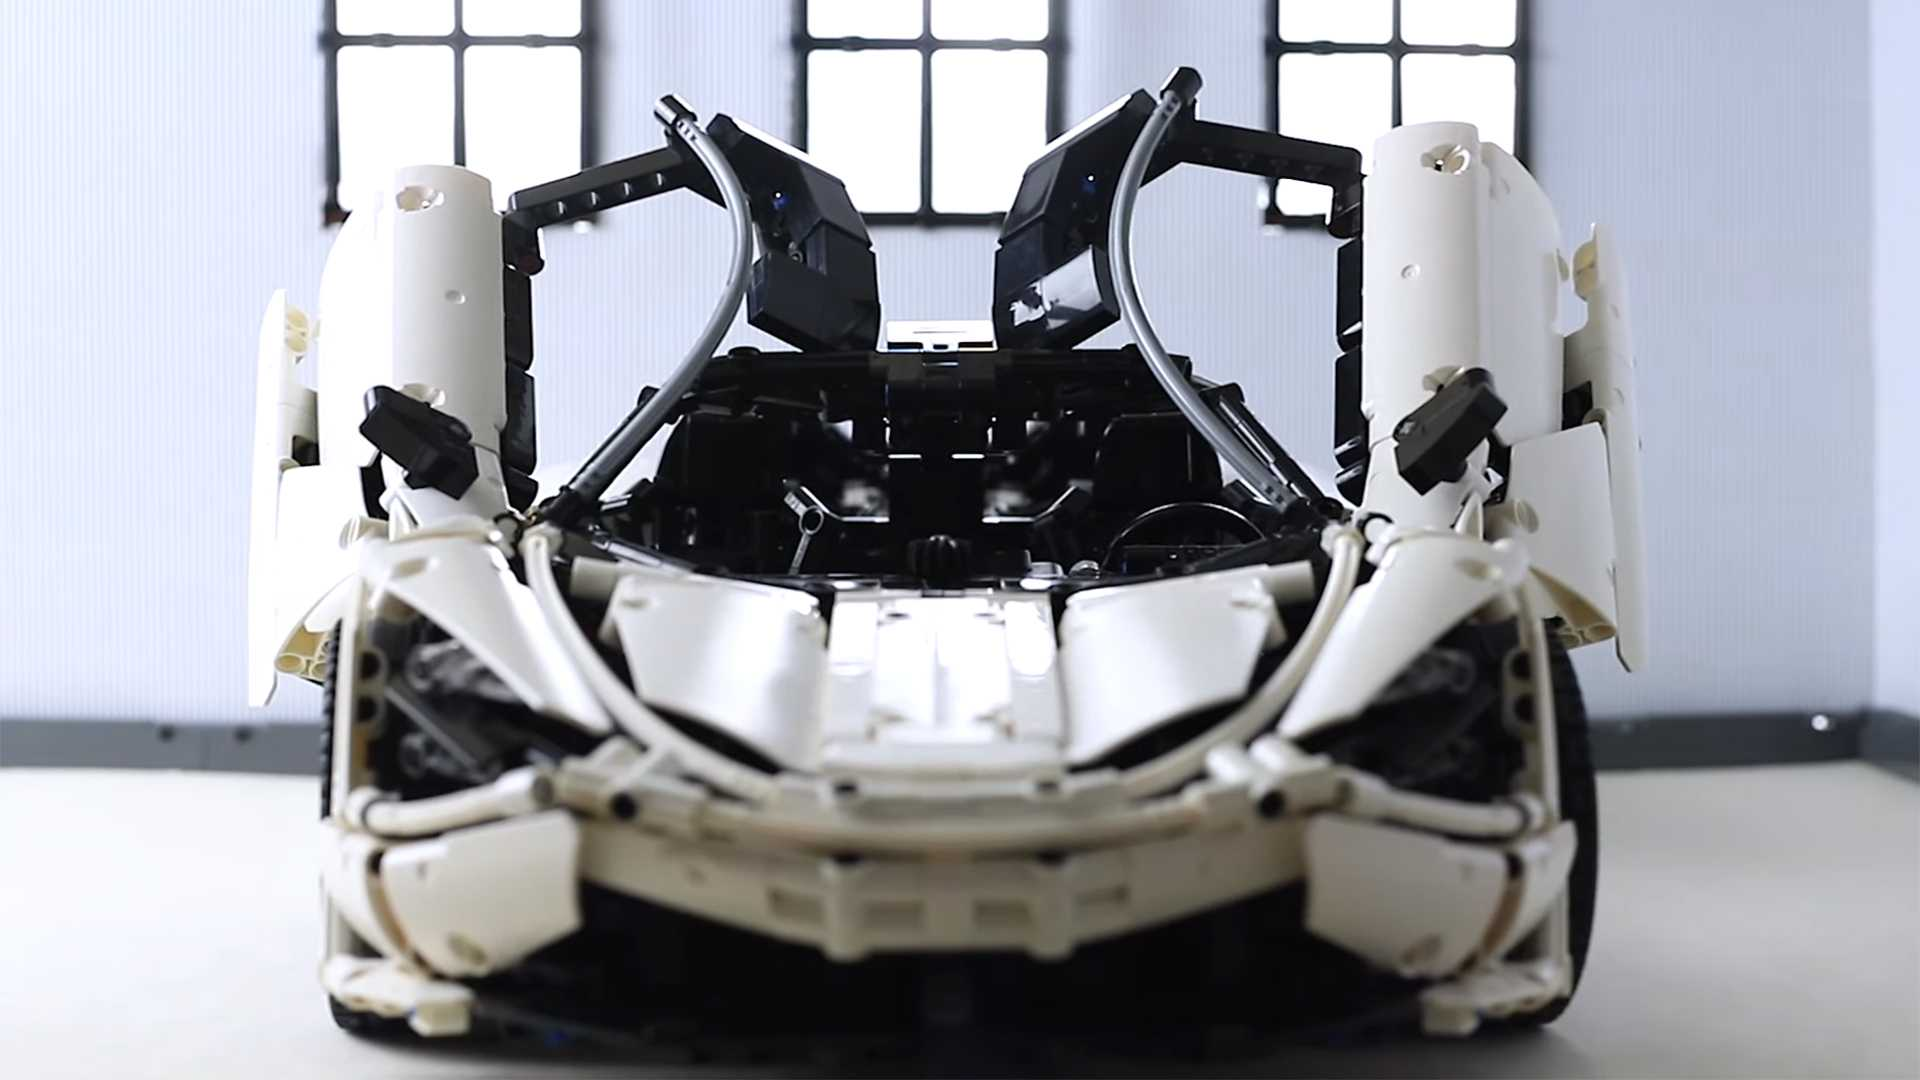 A video has recently popped up on YouTube showing a McLaren 720S painstakingly crafted out of Lego Technic parts. The author says he spent two years working on it.